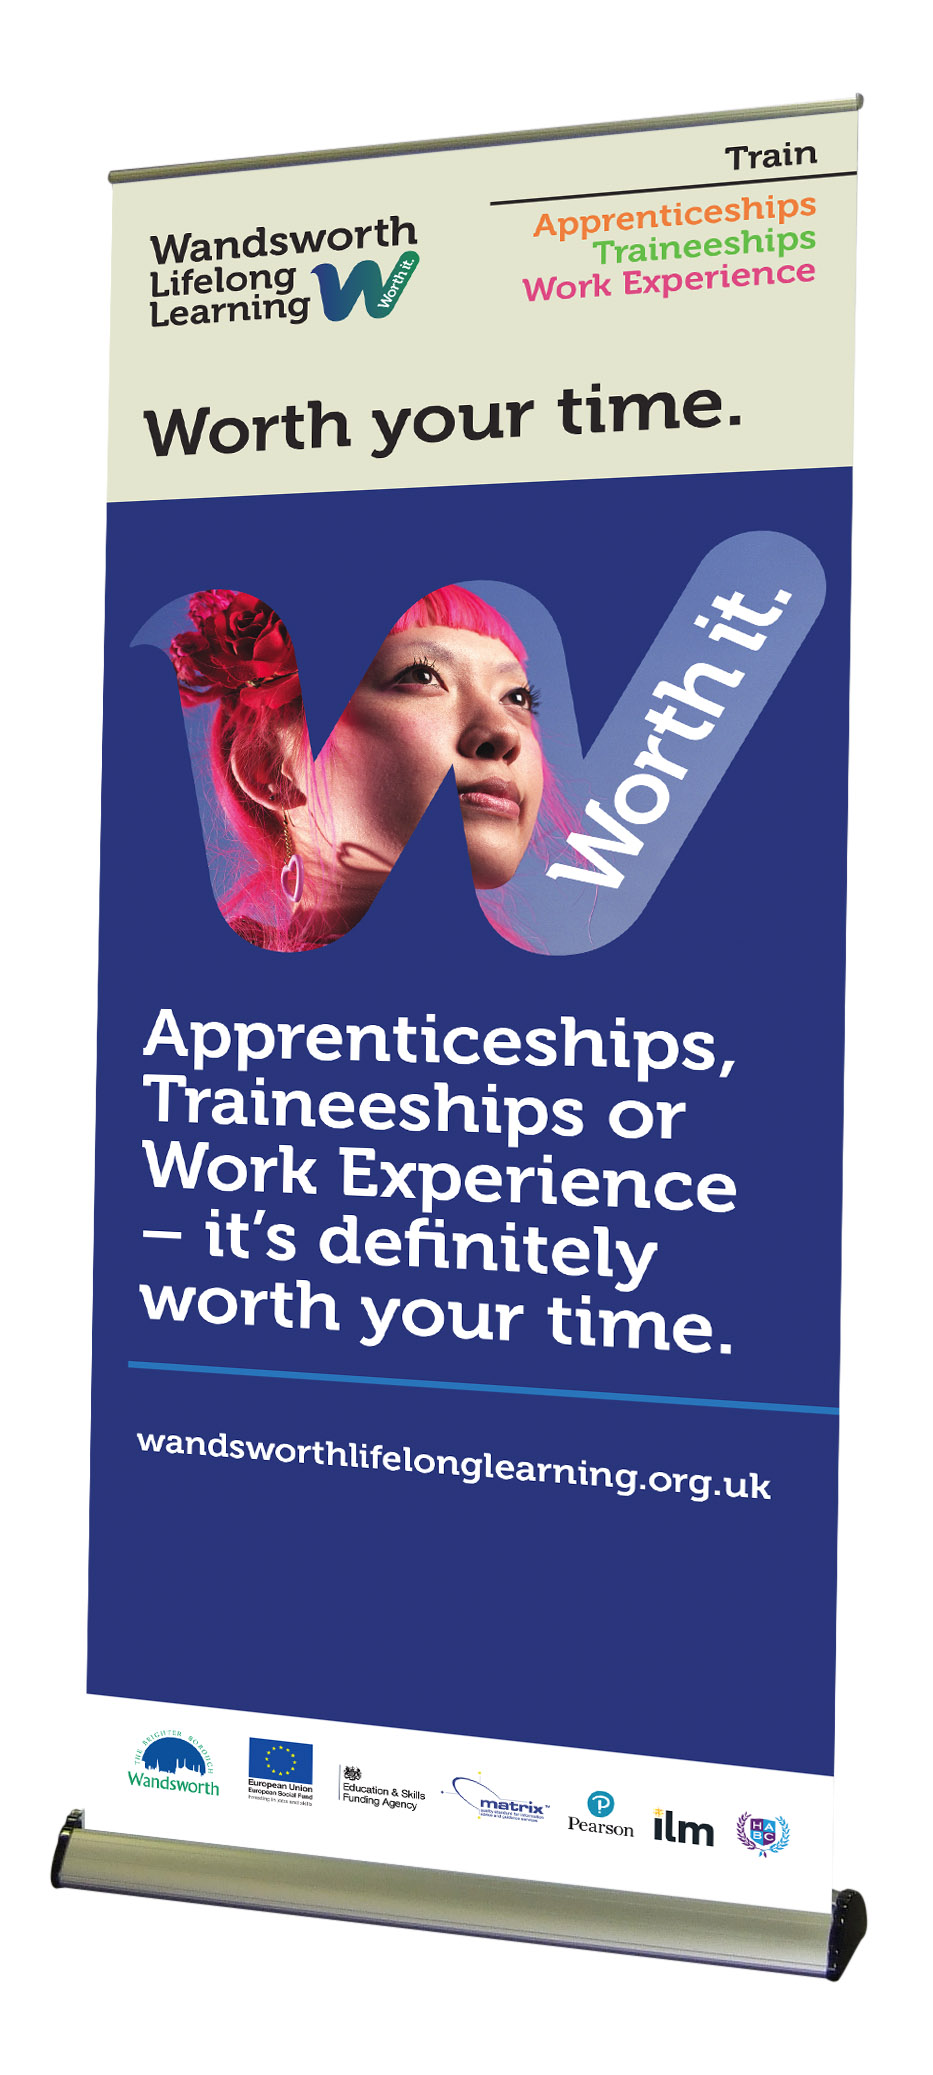 Wandsworth Lifelong Learning banner designed by West Creative